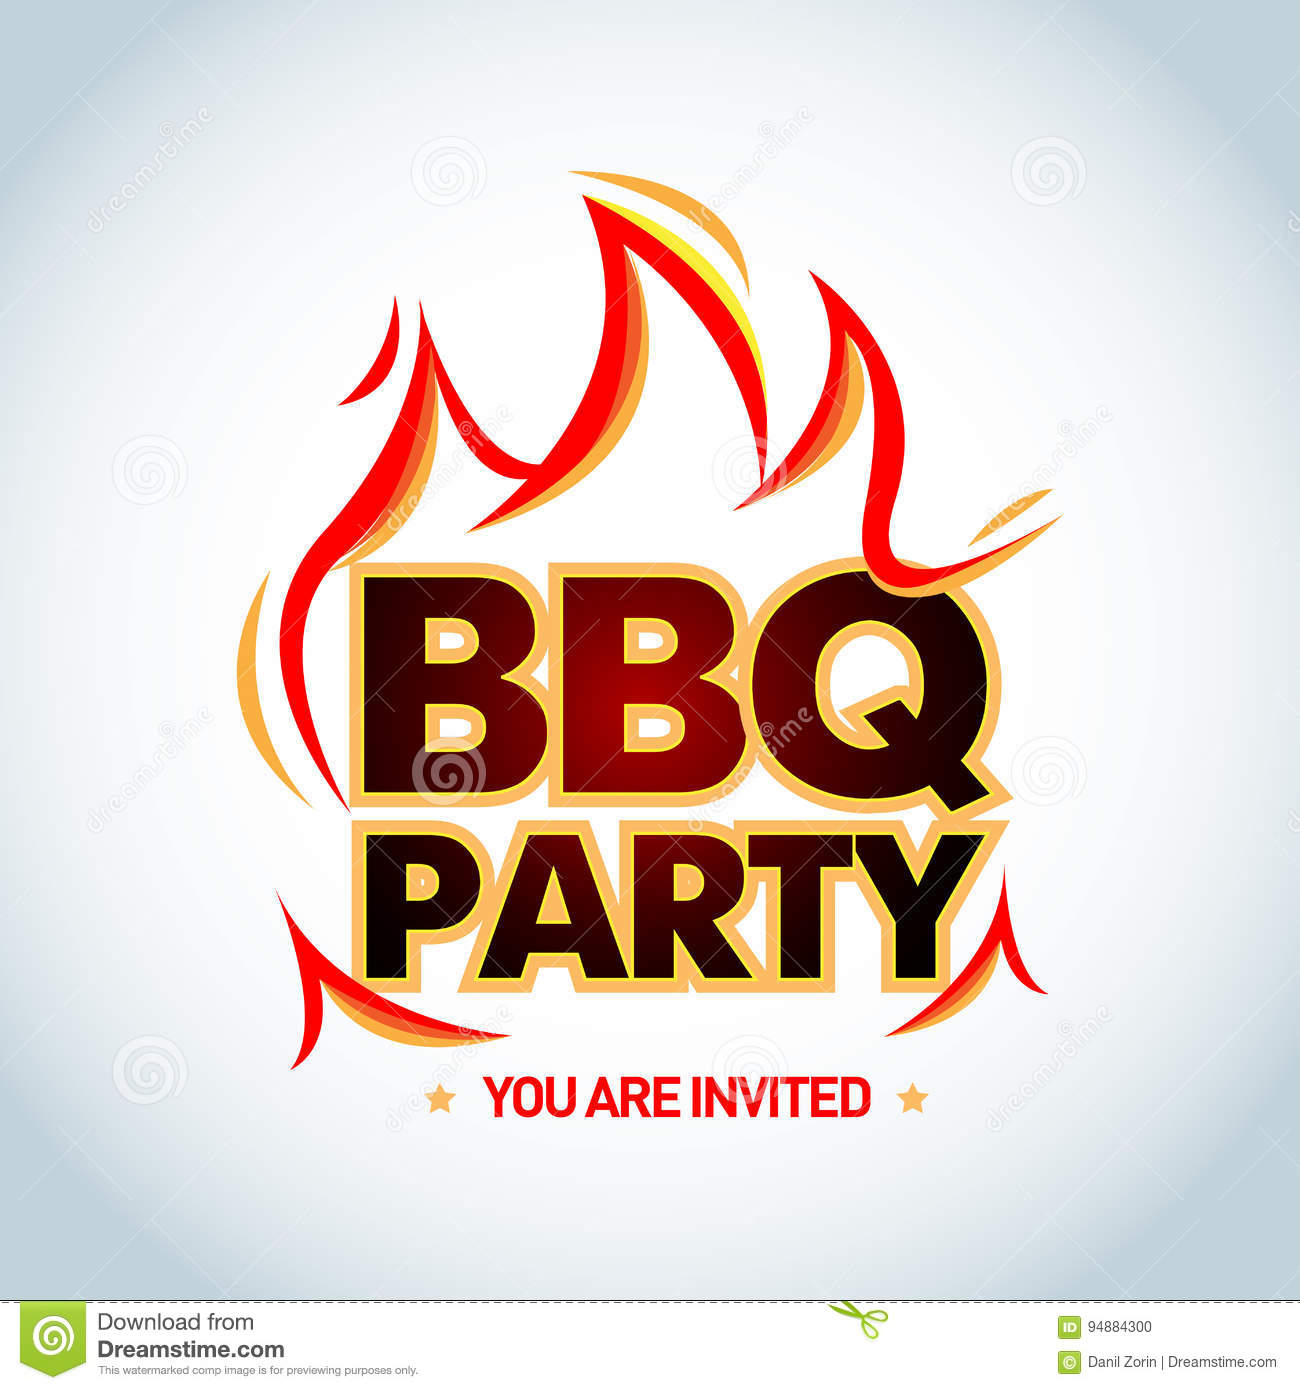 bbq party logotype template with flames barbecue party logo party